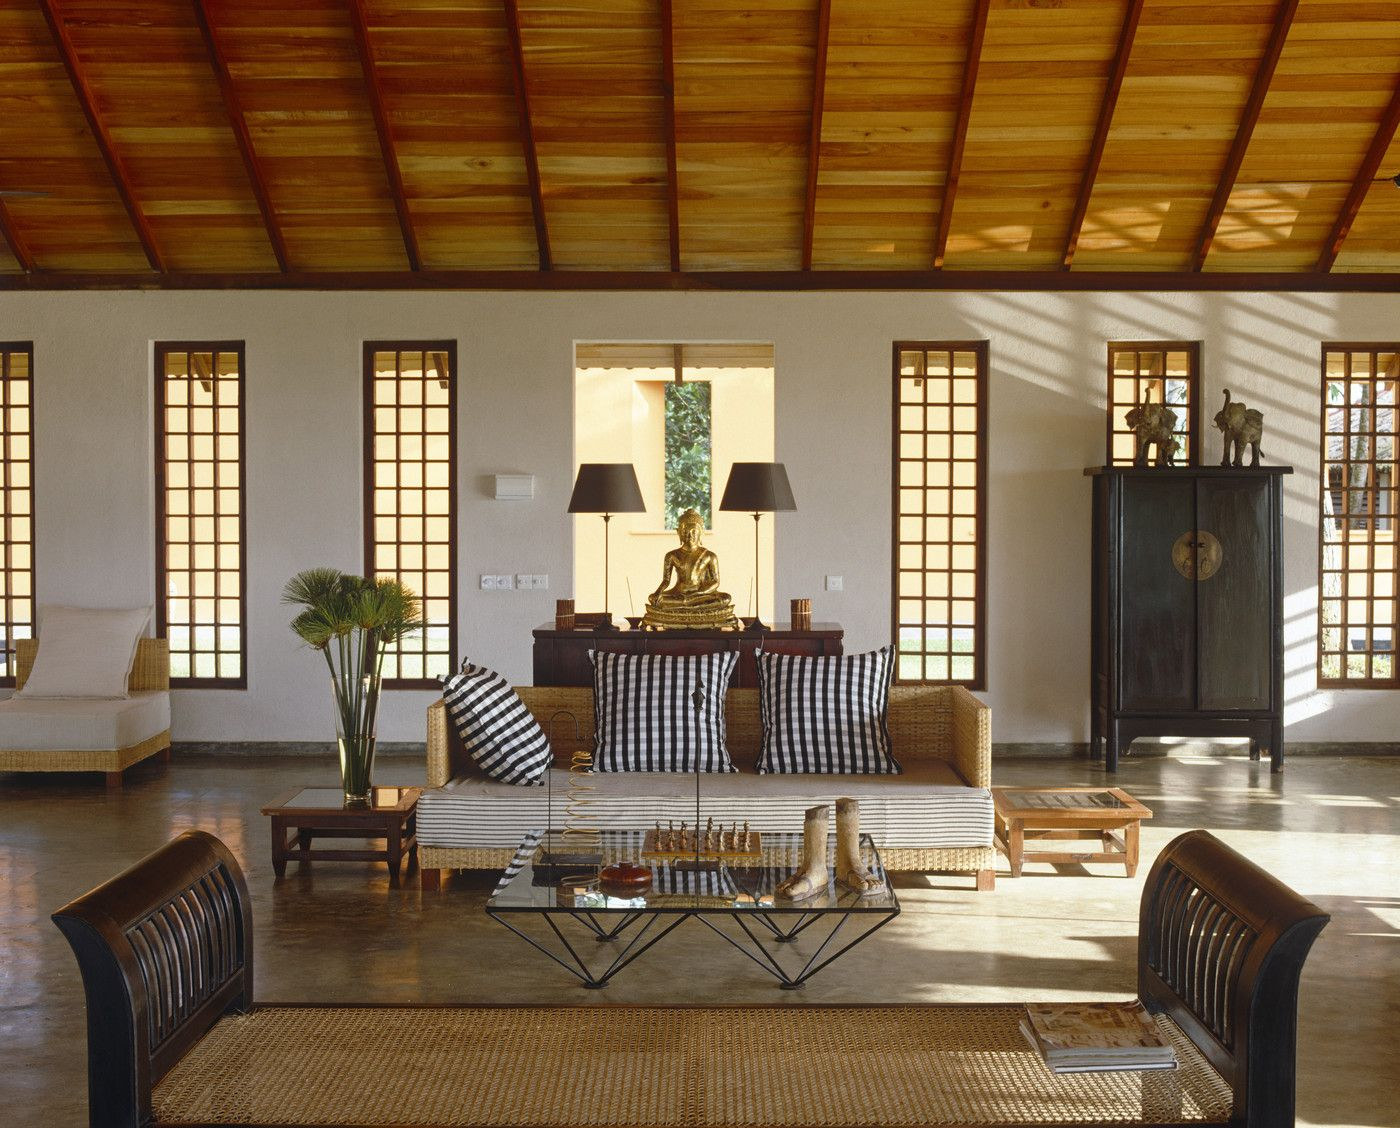 Asian living room decor ideas also best cozy design pinterest rh